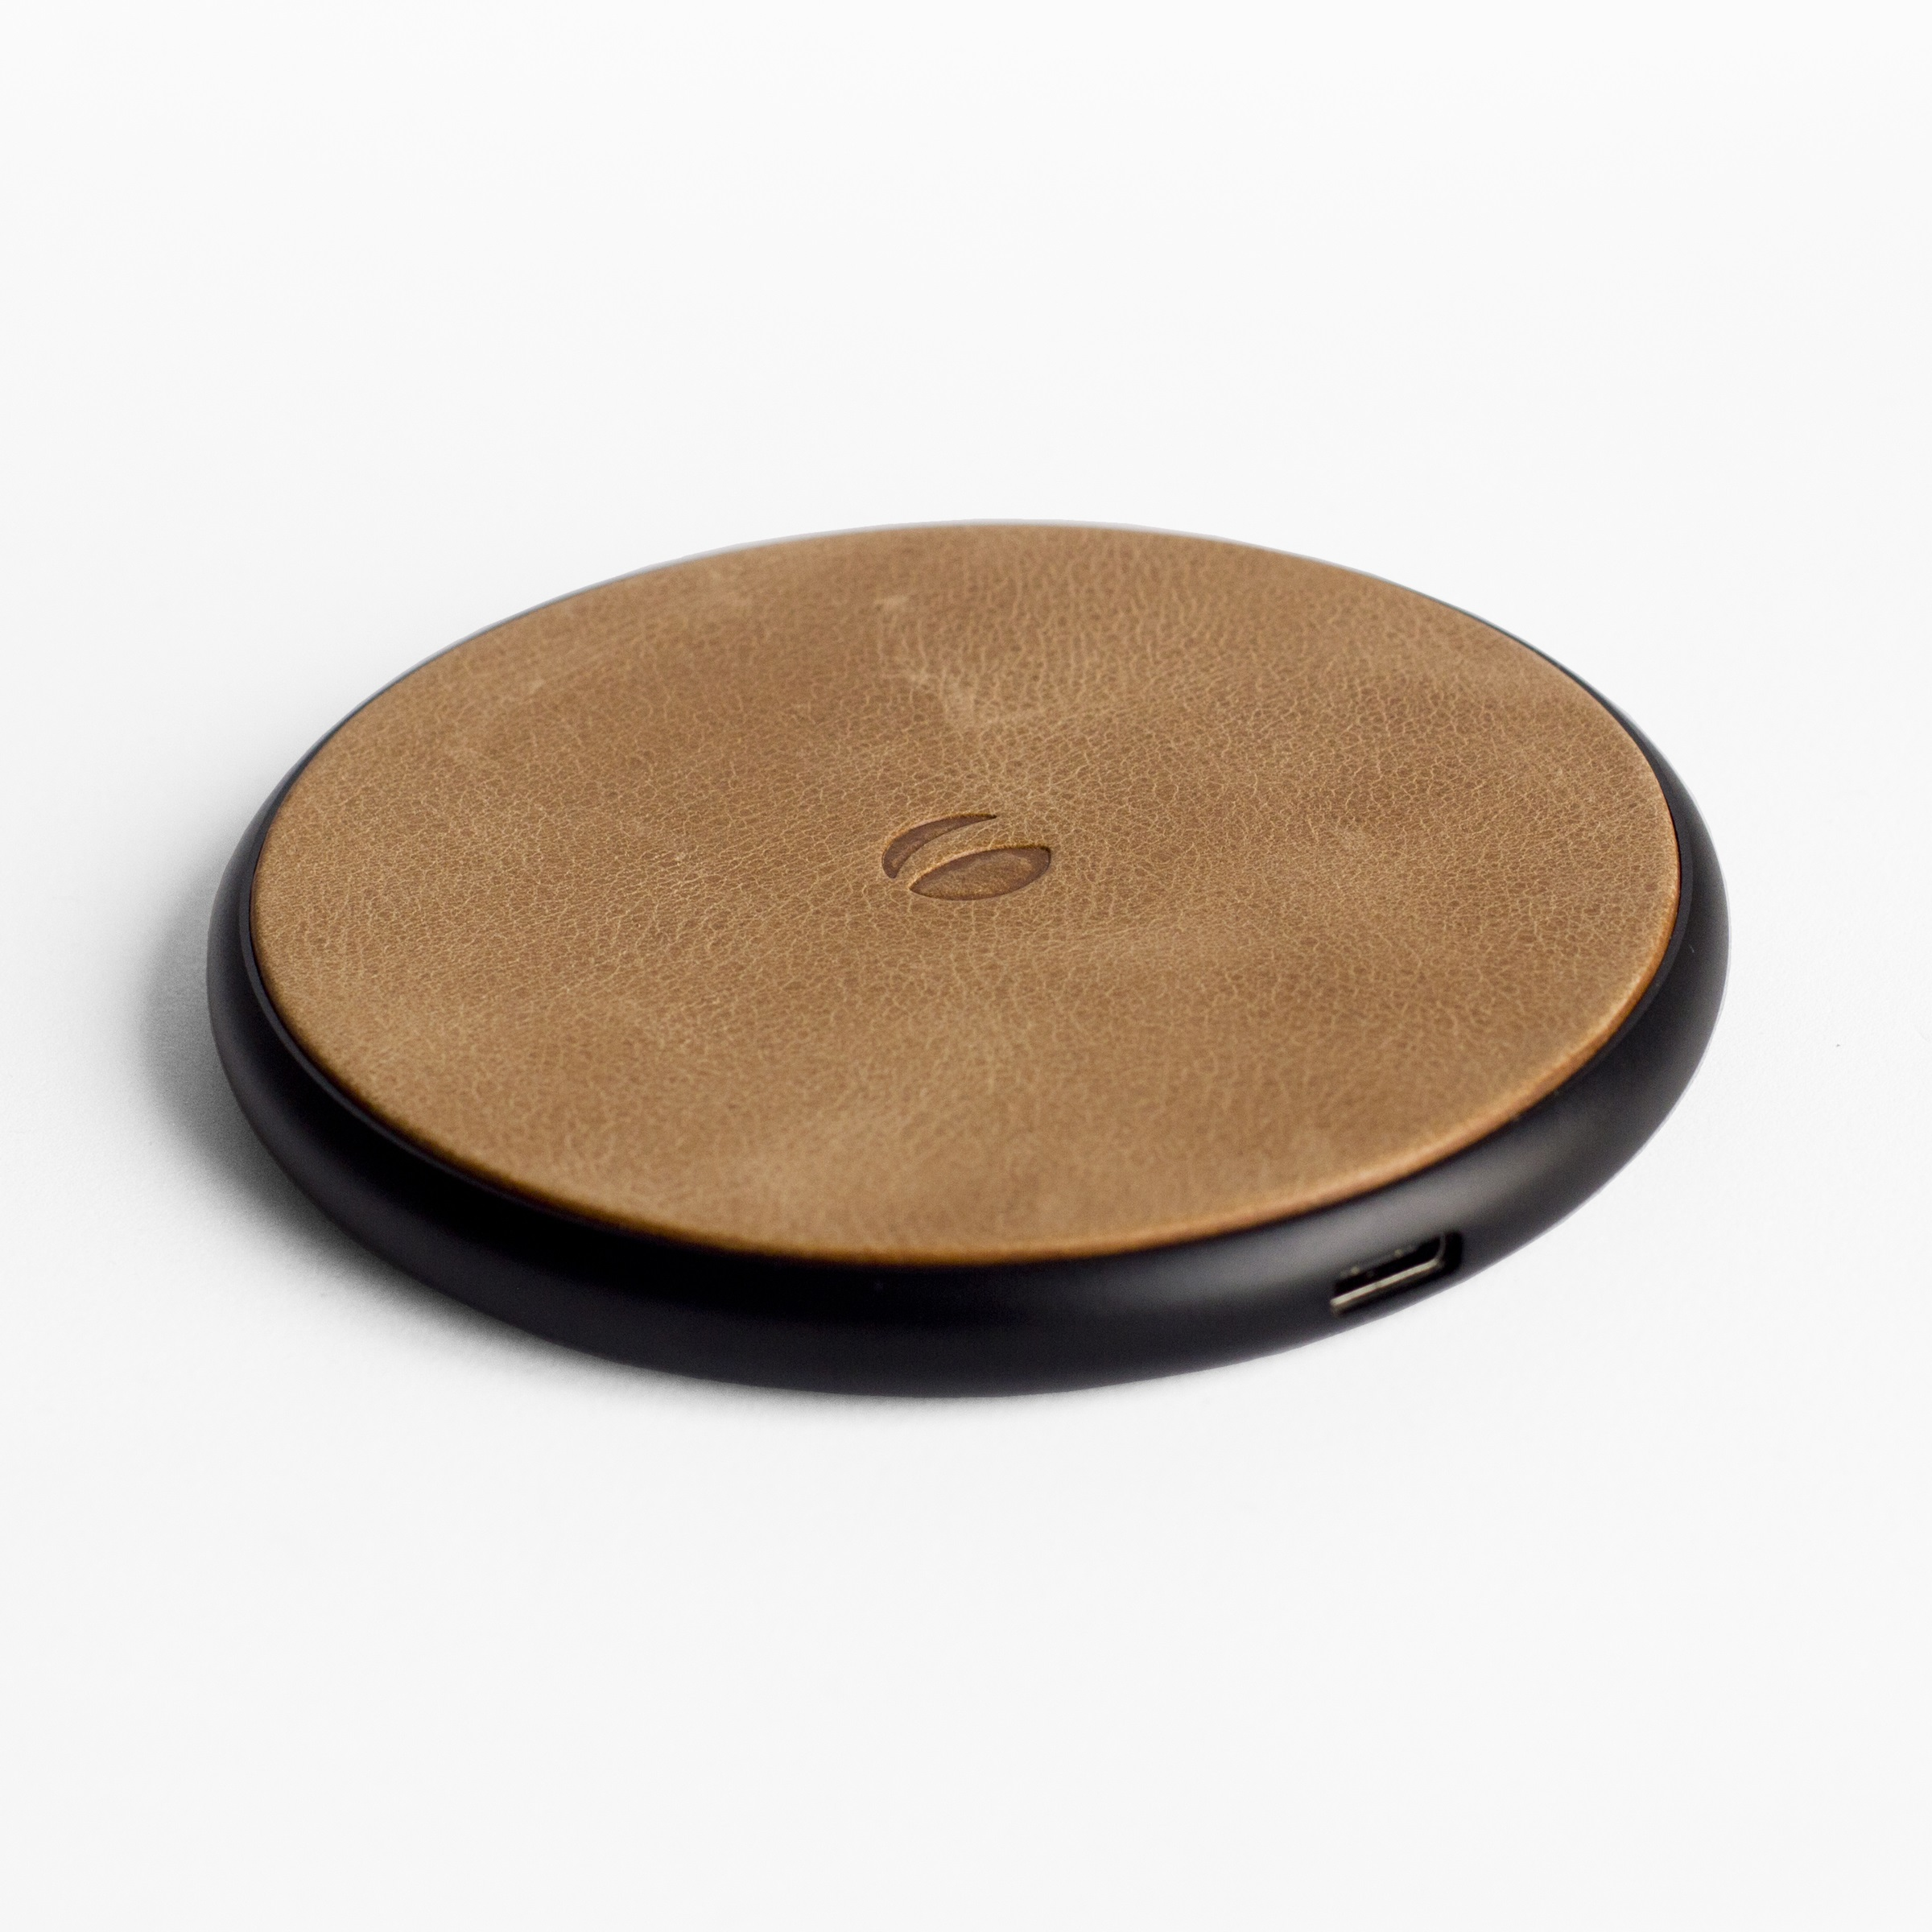 Krusell Sunne Wireless Charger Universal- Vintage Nude